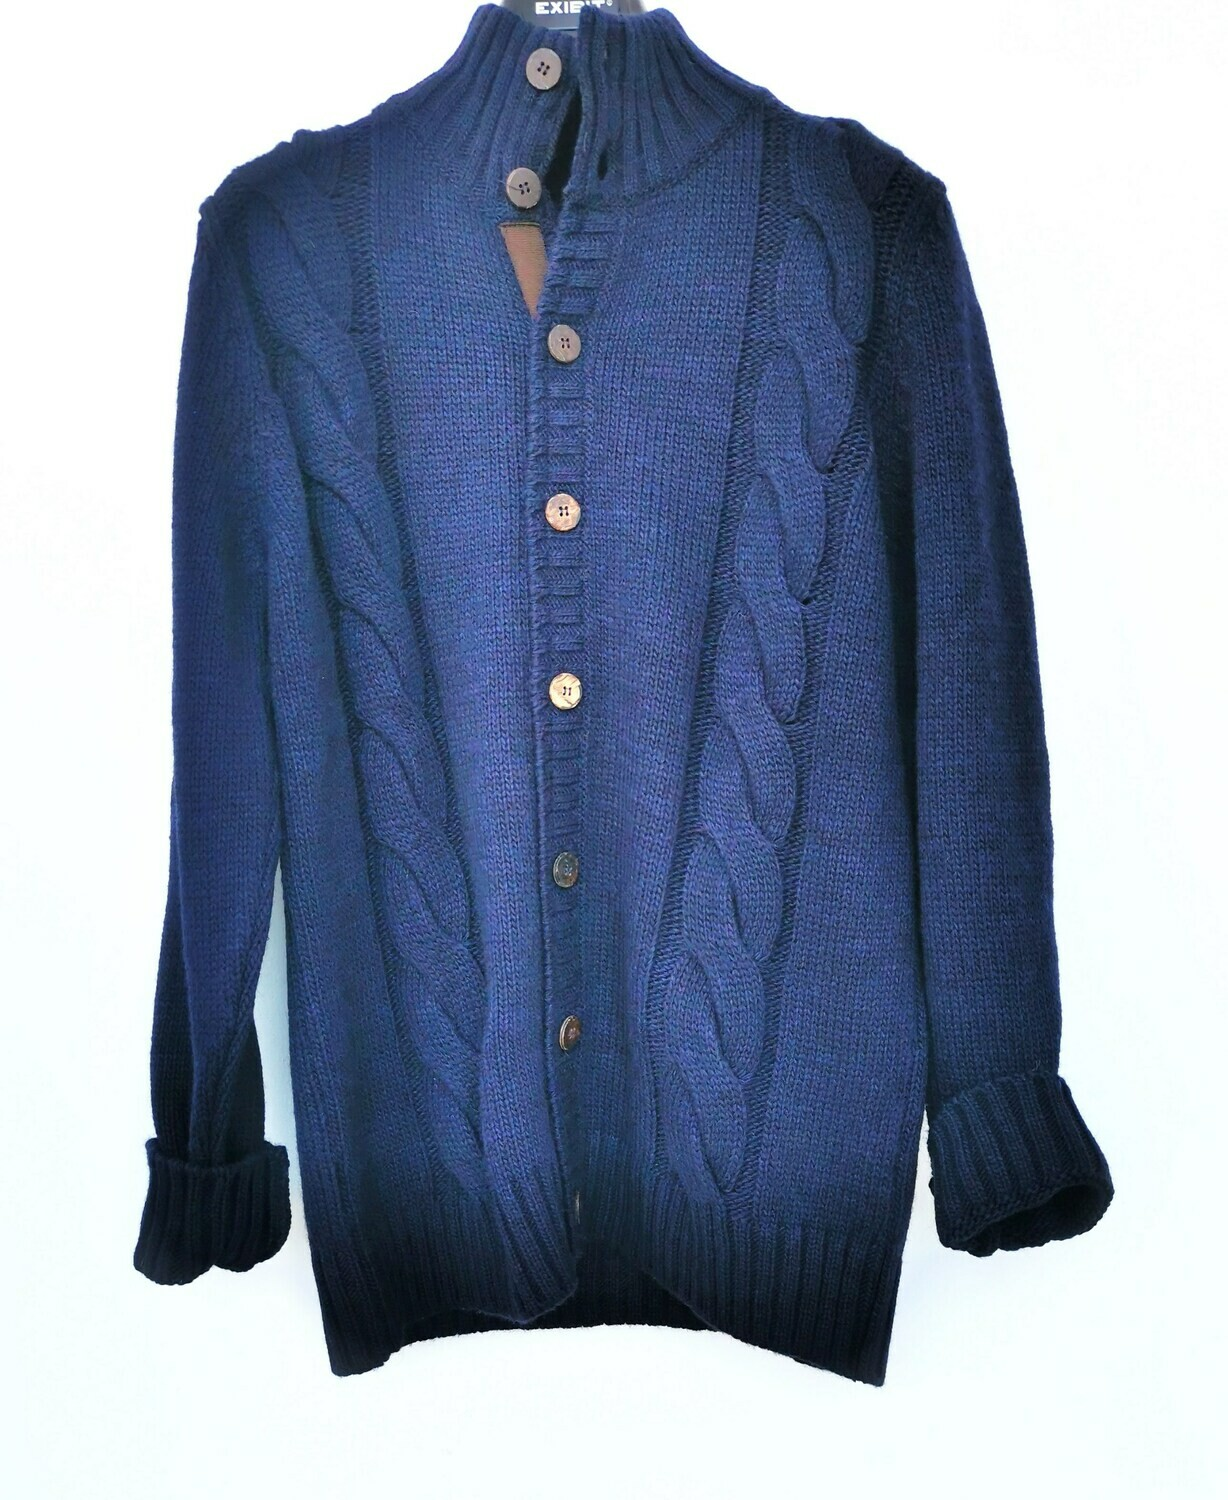 Mock cardigan with wooden buttons